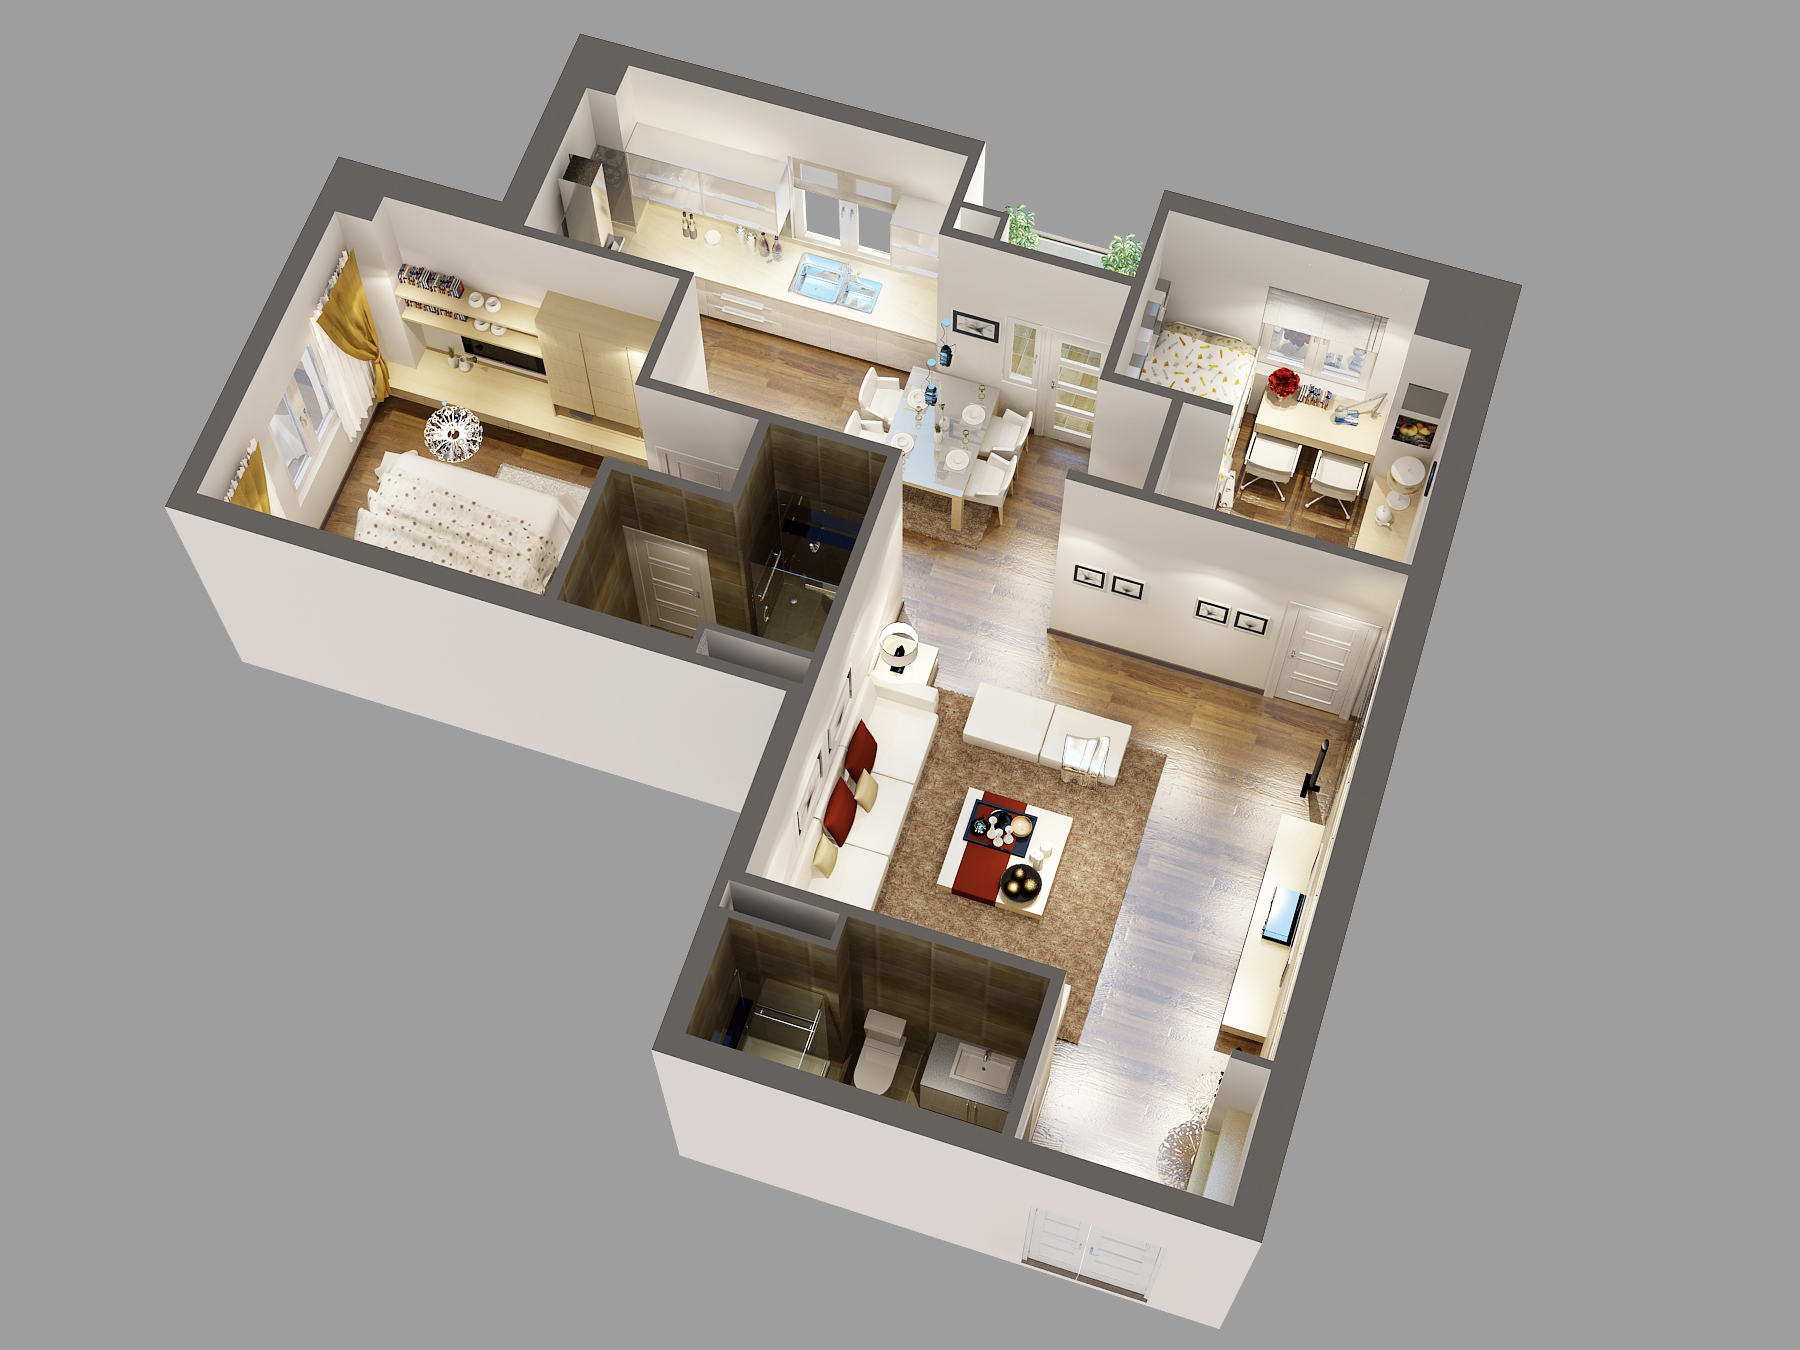 Detailed house cutaway 3d model 3d model max House 3d model